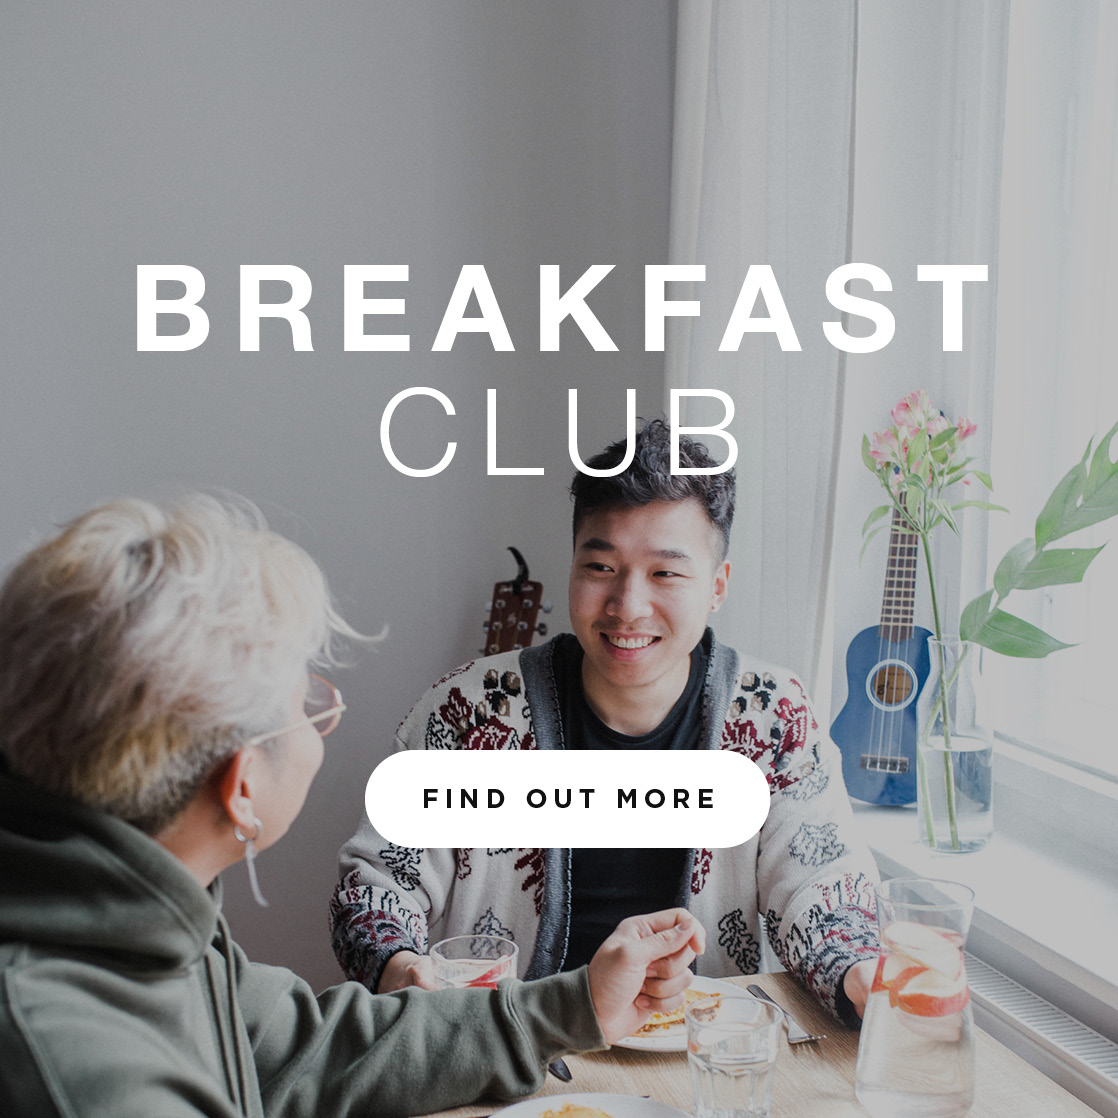 Breakfast Club – Find out more